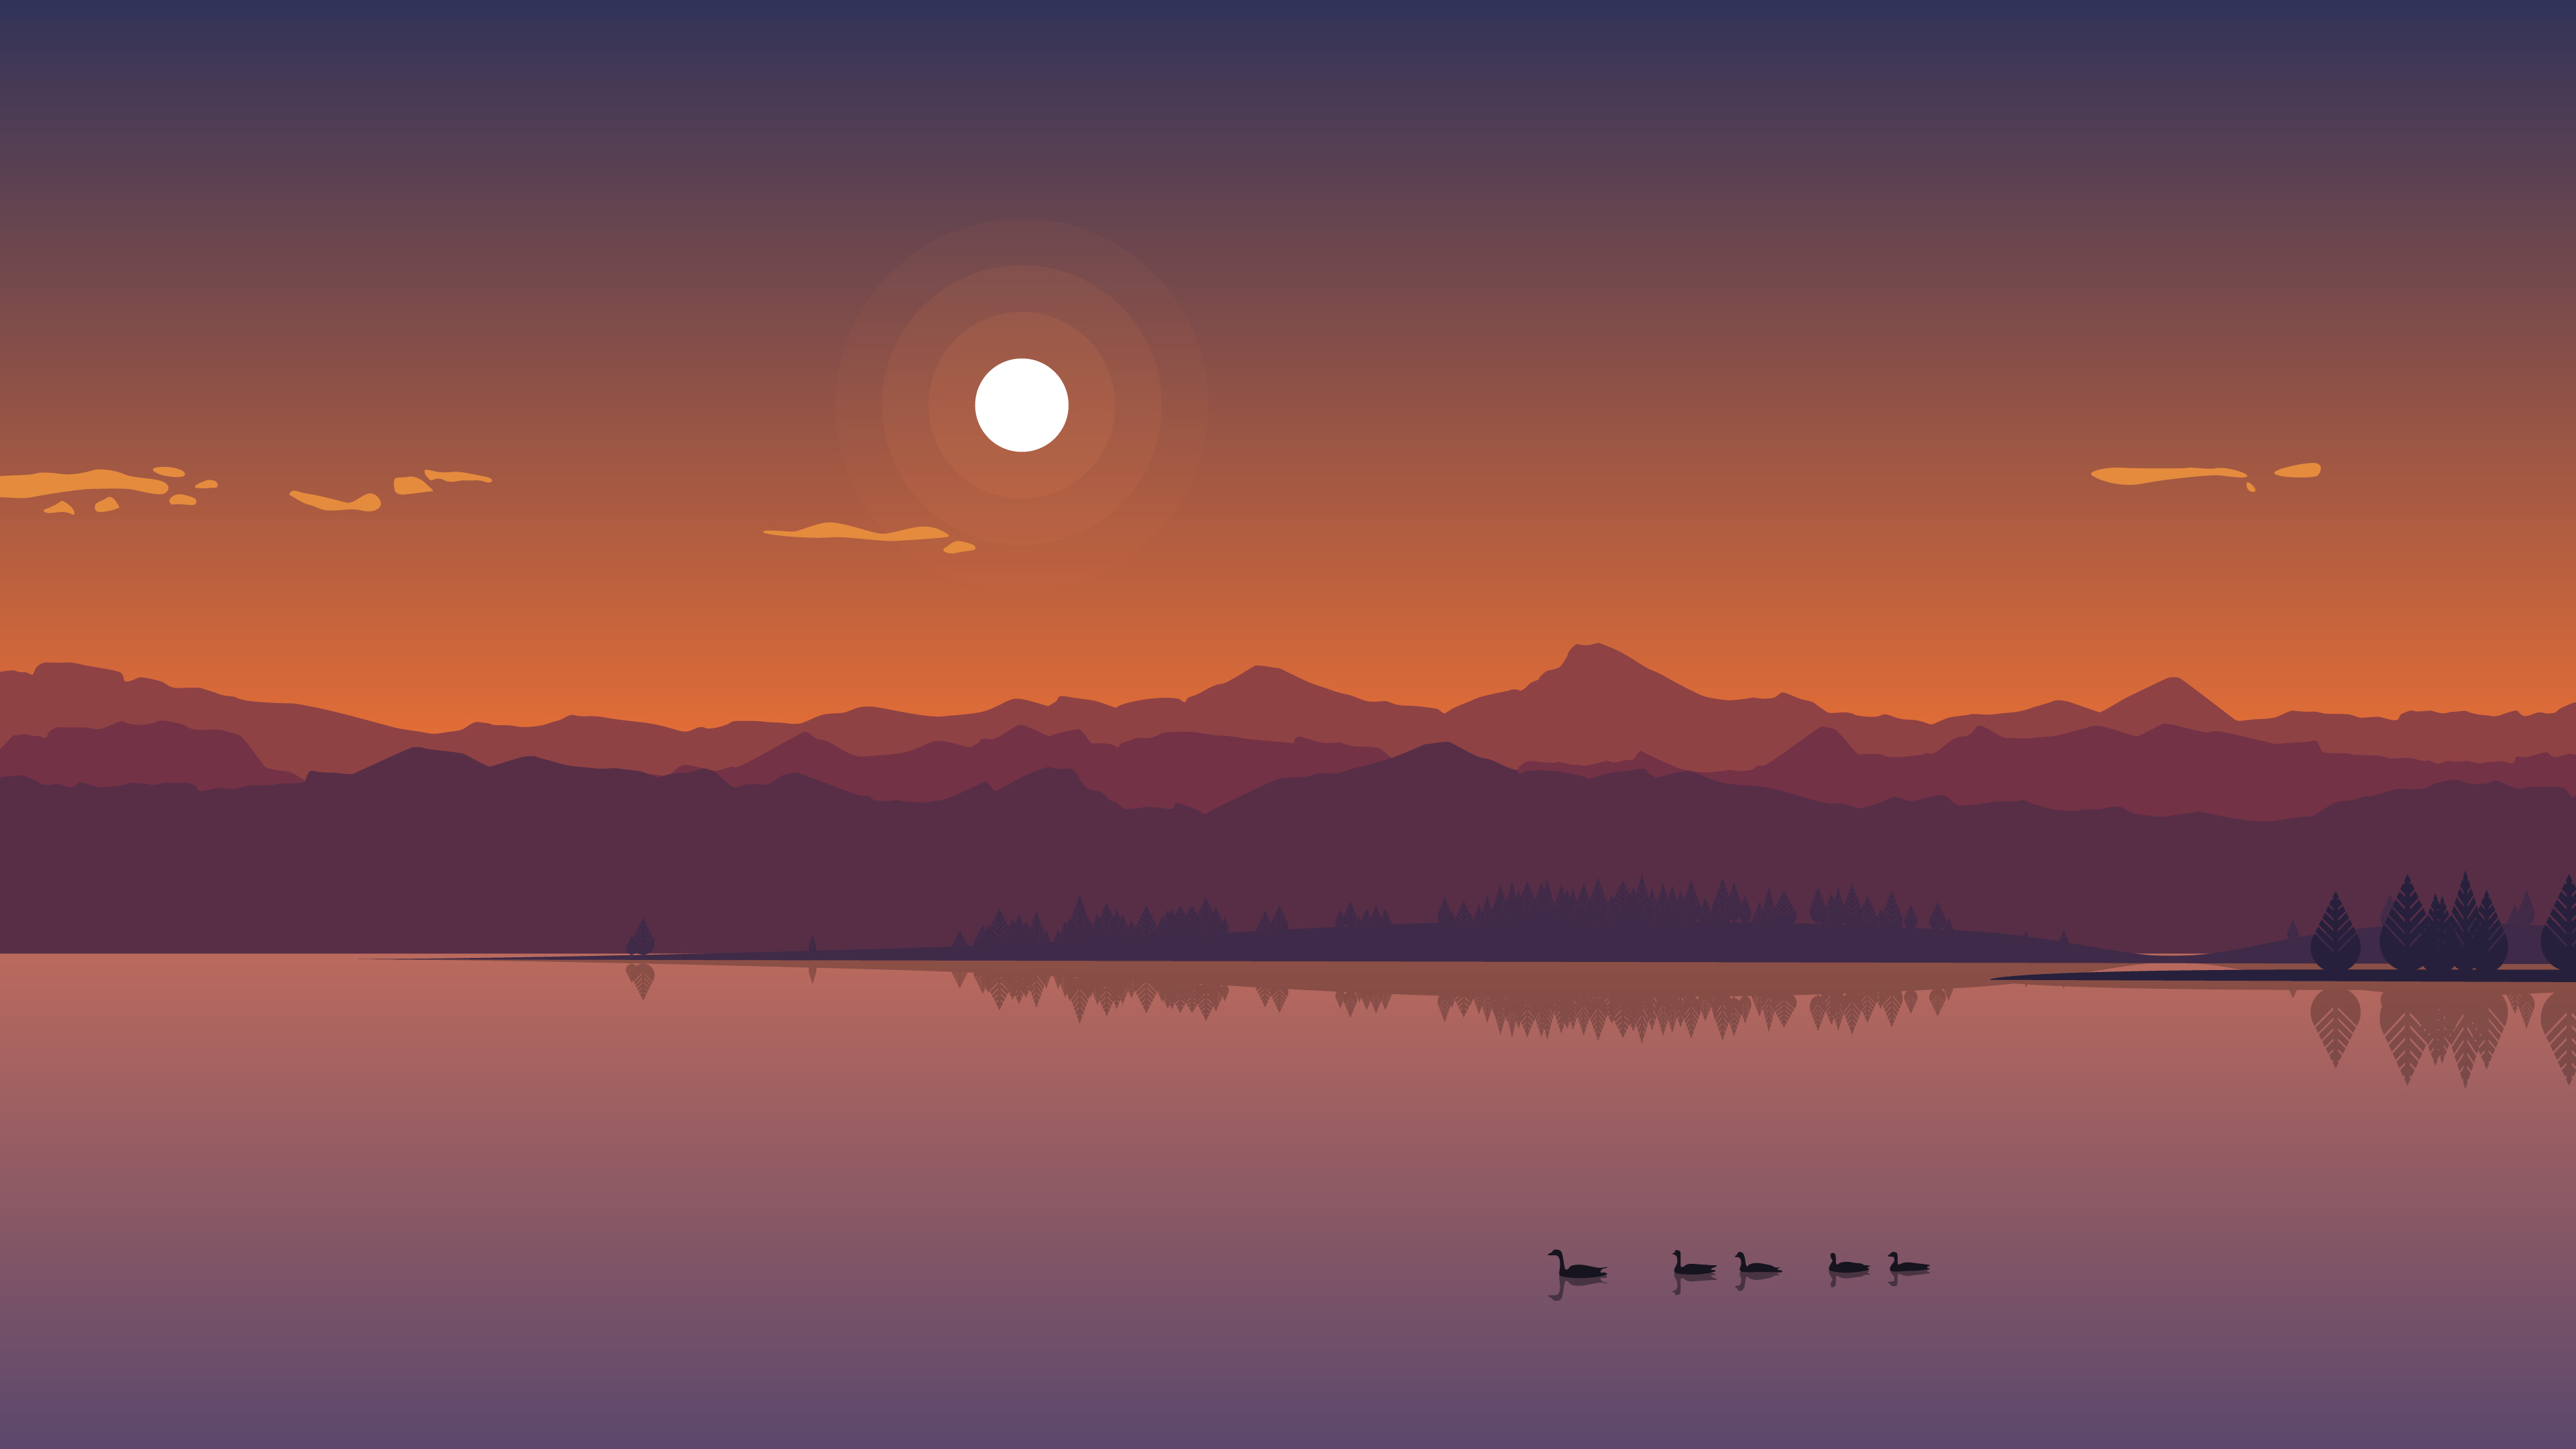 Wallpaper Pubg Minmlist: Minimal Lake Sunset, HD 4K Wallpaper